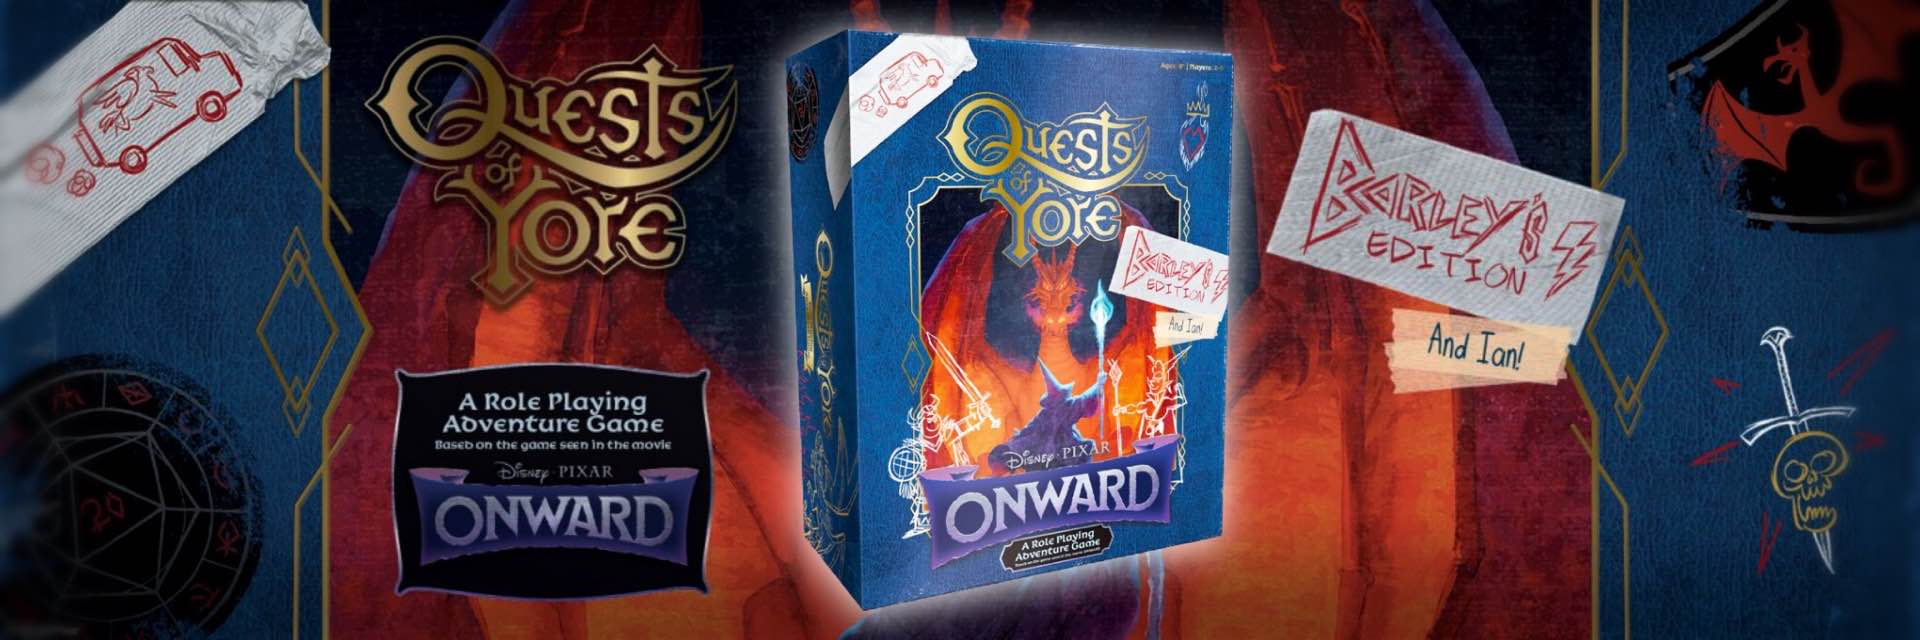 disney-pixar-onward-quests-of-yore-role-playing-game